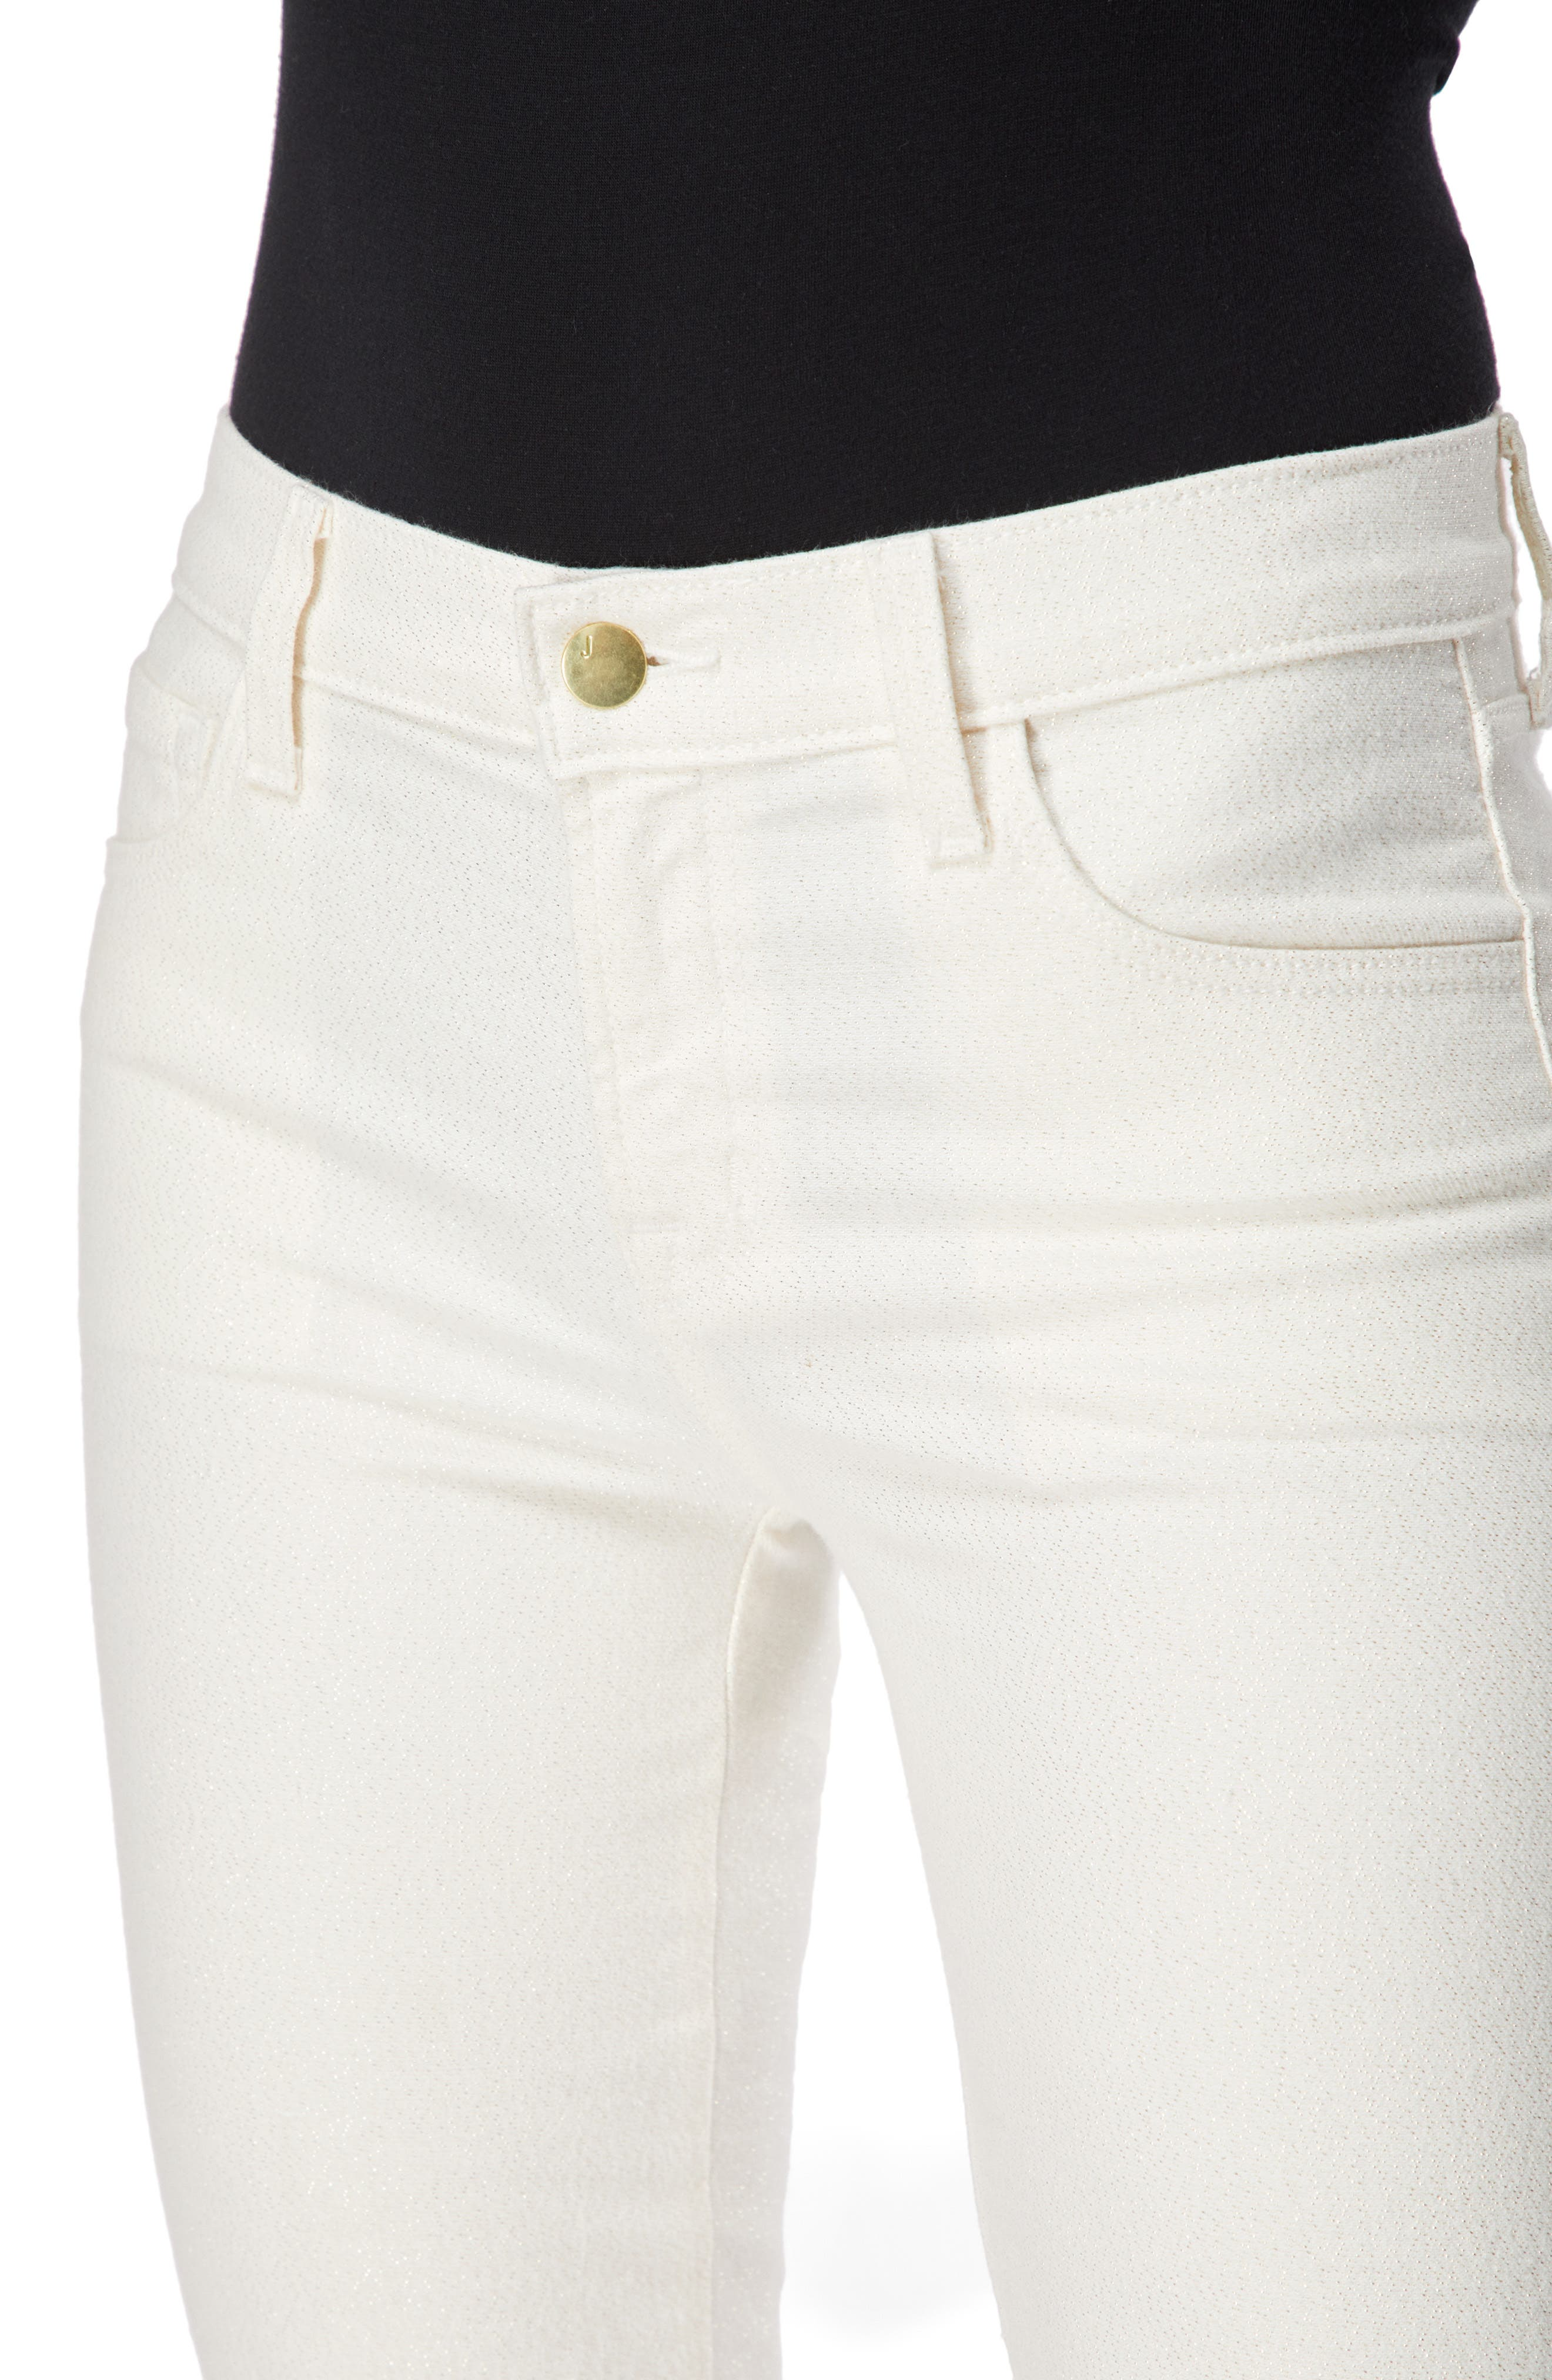 Selena Crop Bootcut Jeans,                             Alternate thumbnail 4, color,                             GLIMMER